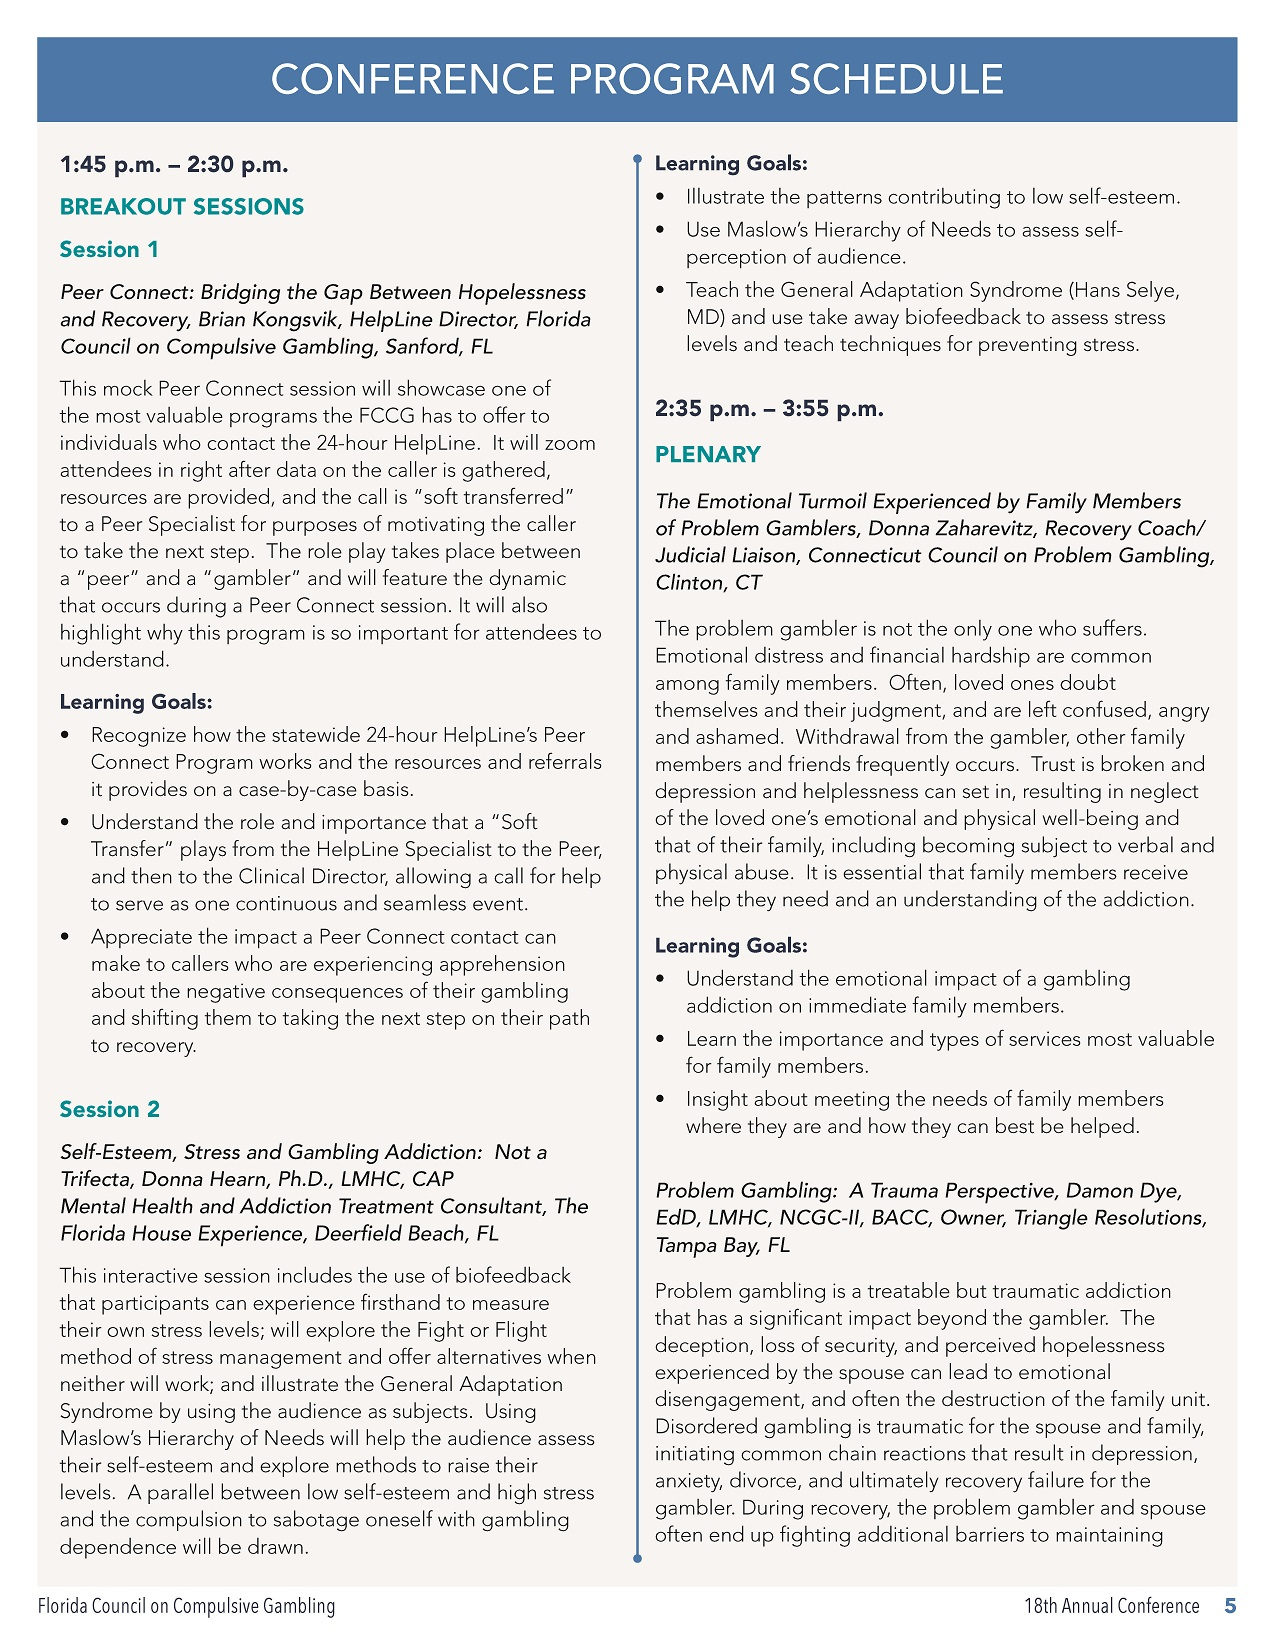 18th Annual Conference Program Schedule_Page_3